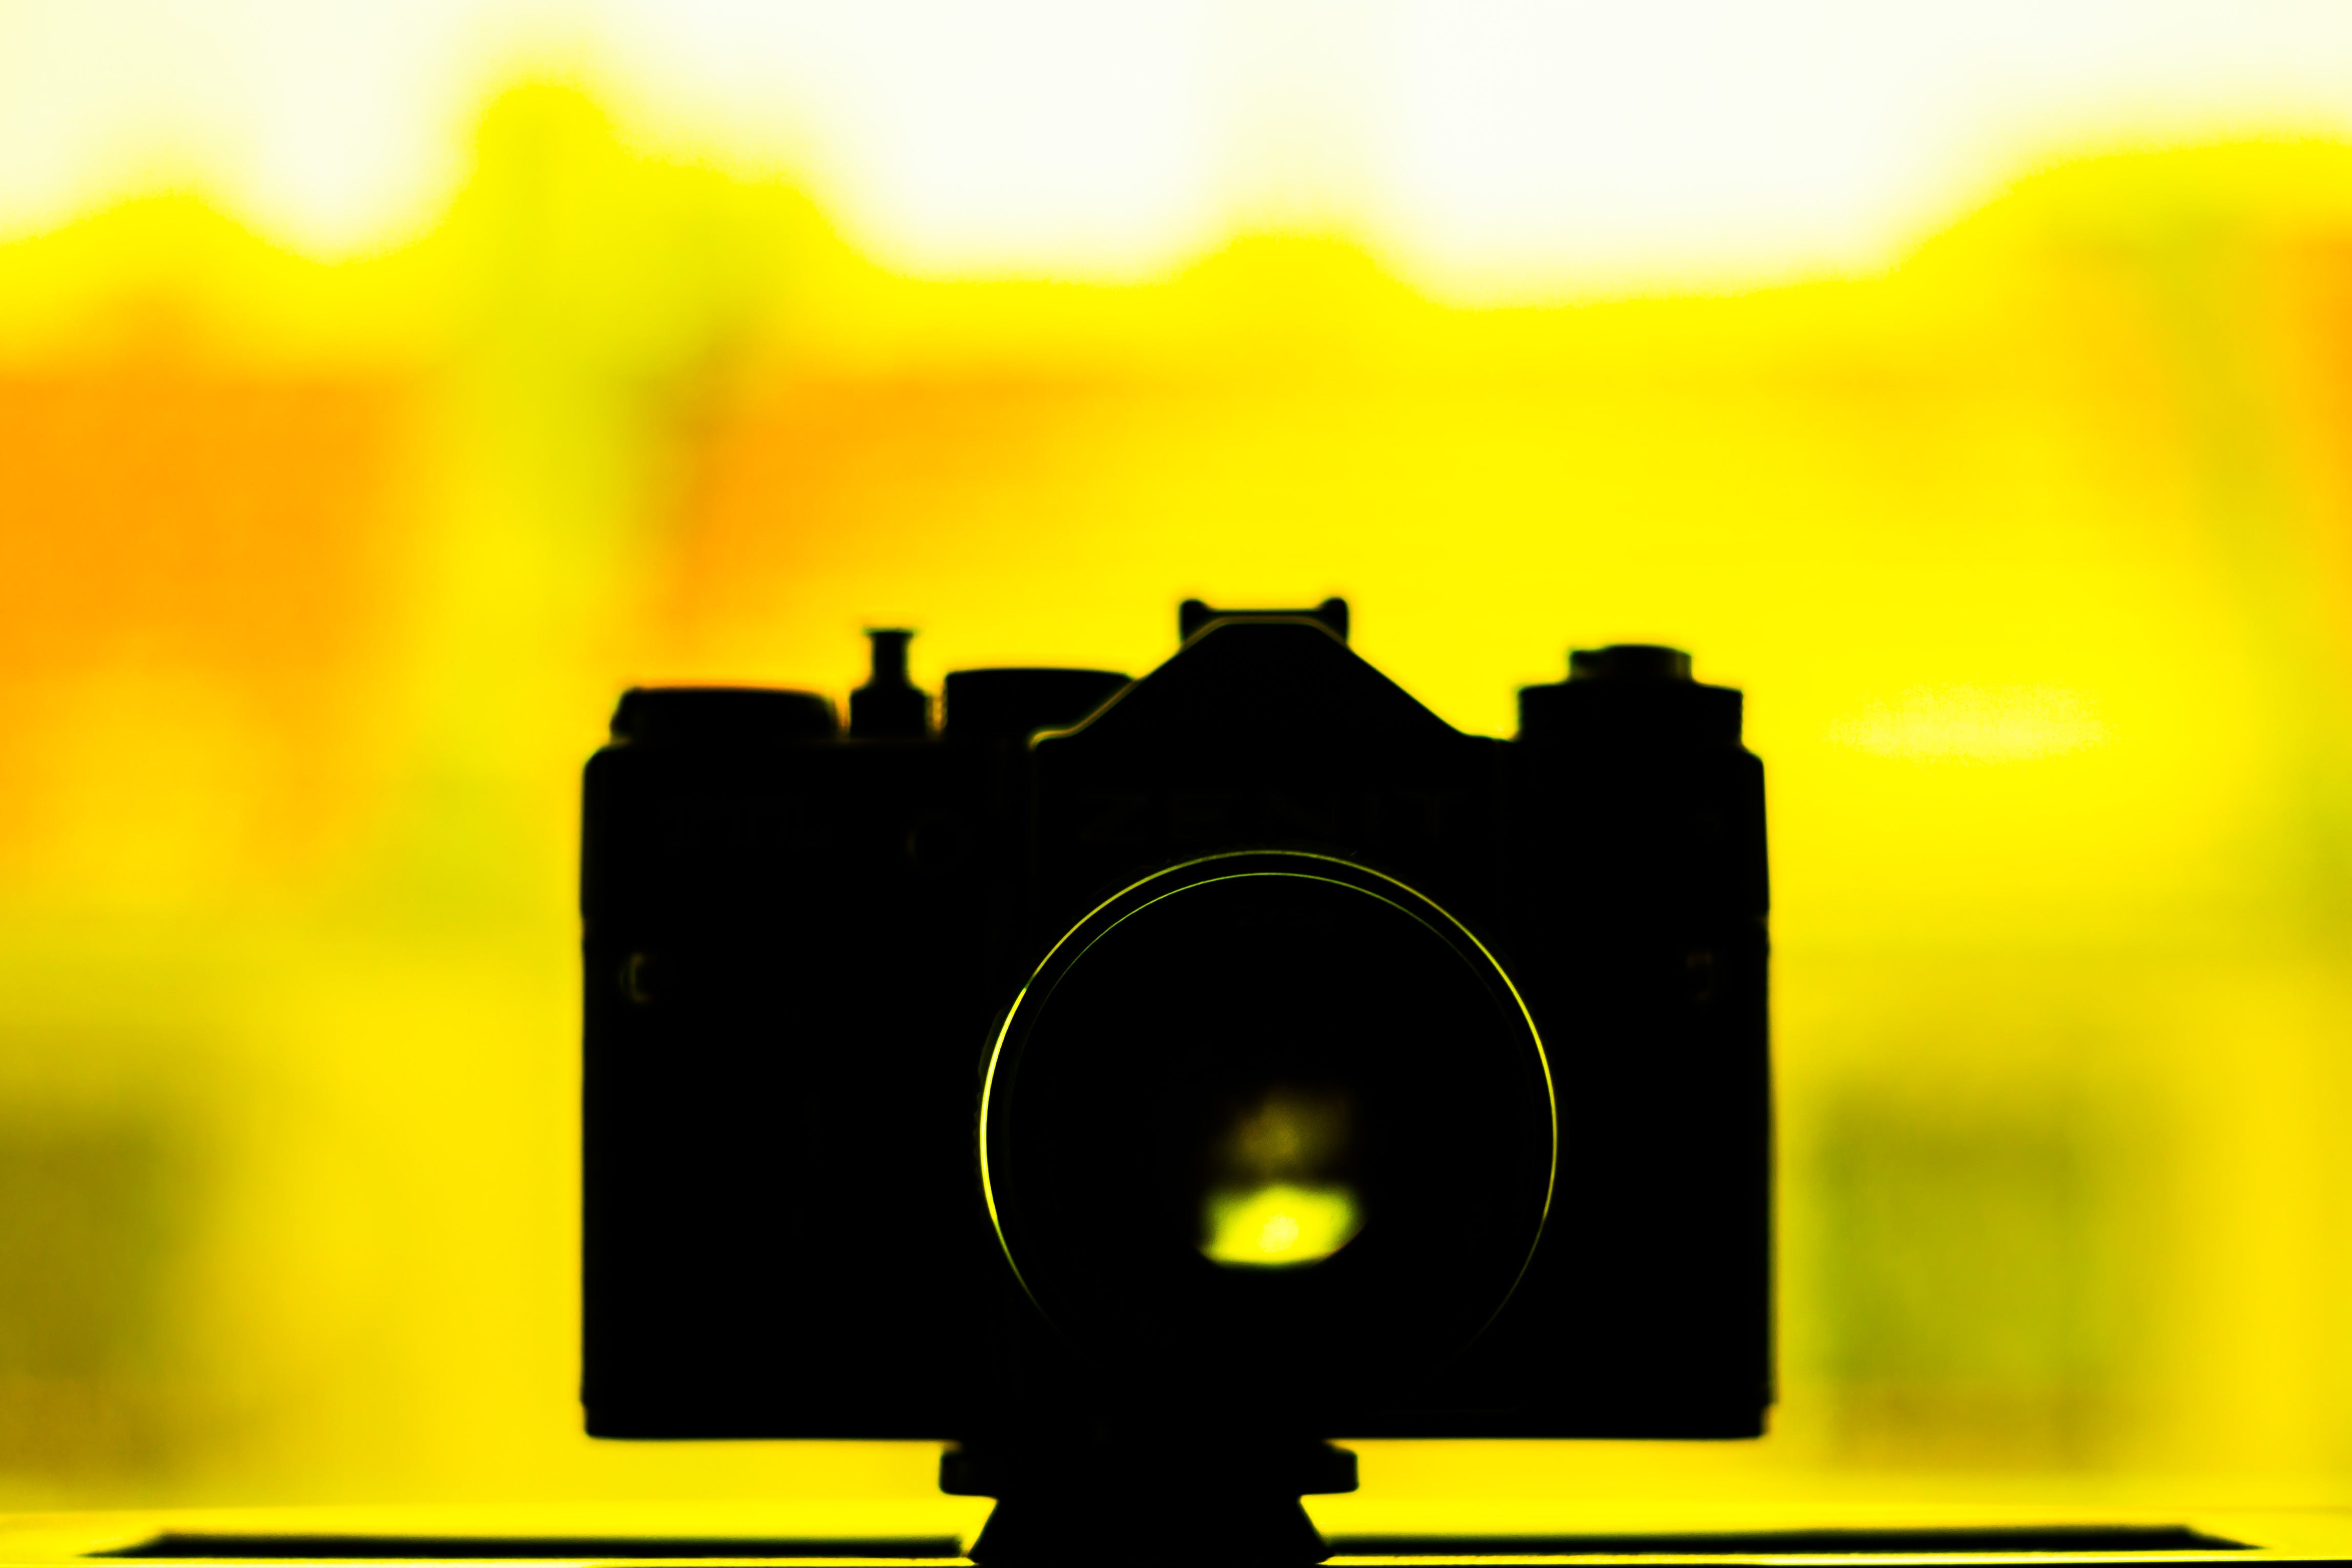 Silhouette Photo of Camera on Yellow Background